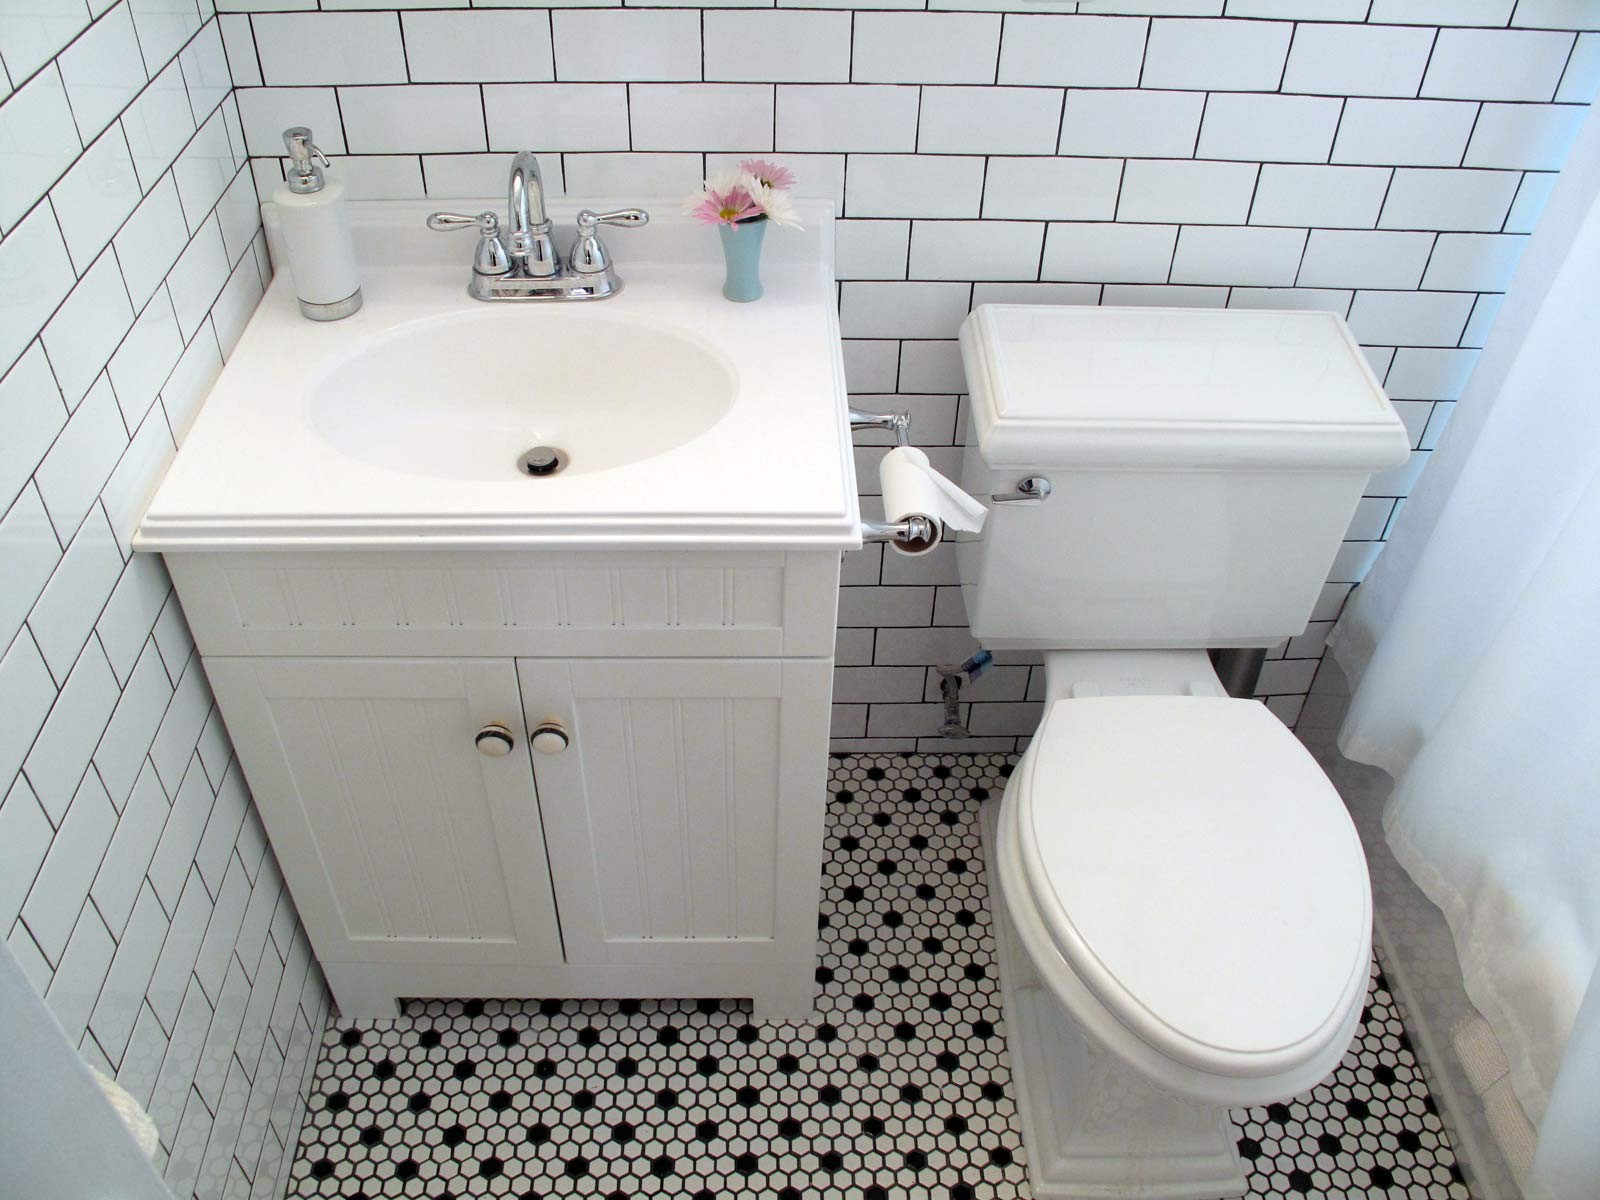 Best Of Black and White Bathroom Tile Inspiration - Bathroom Design ...